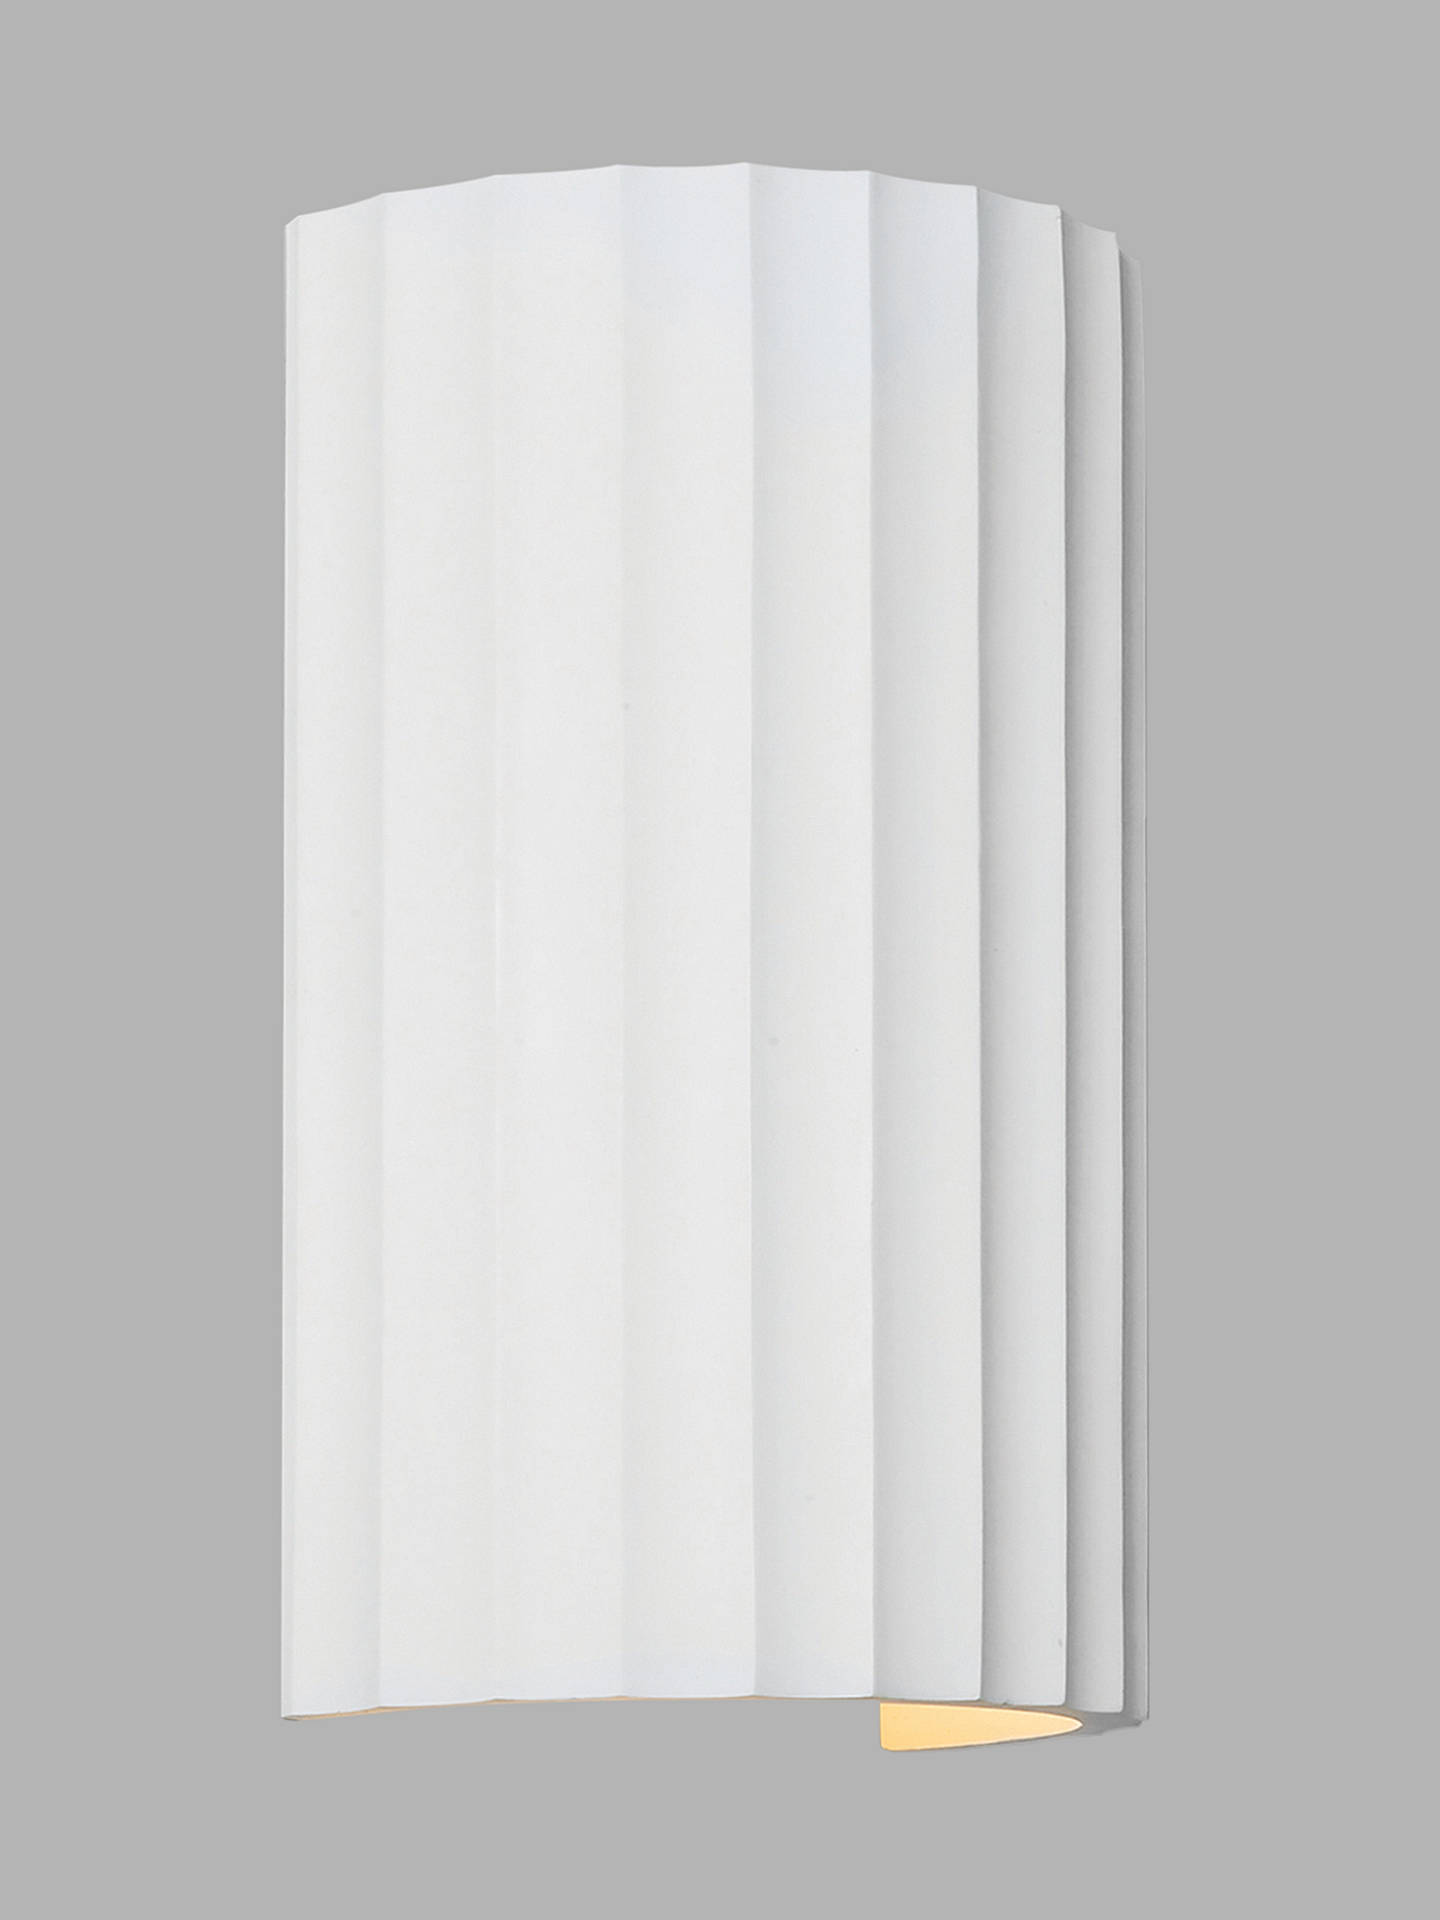 BuyAstro Kymi Wall Light, White Online at johnlewis.com